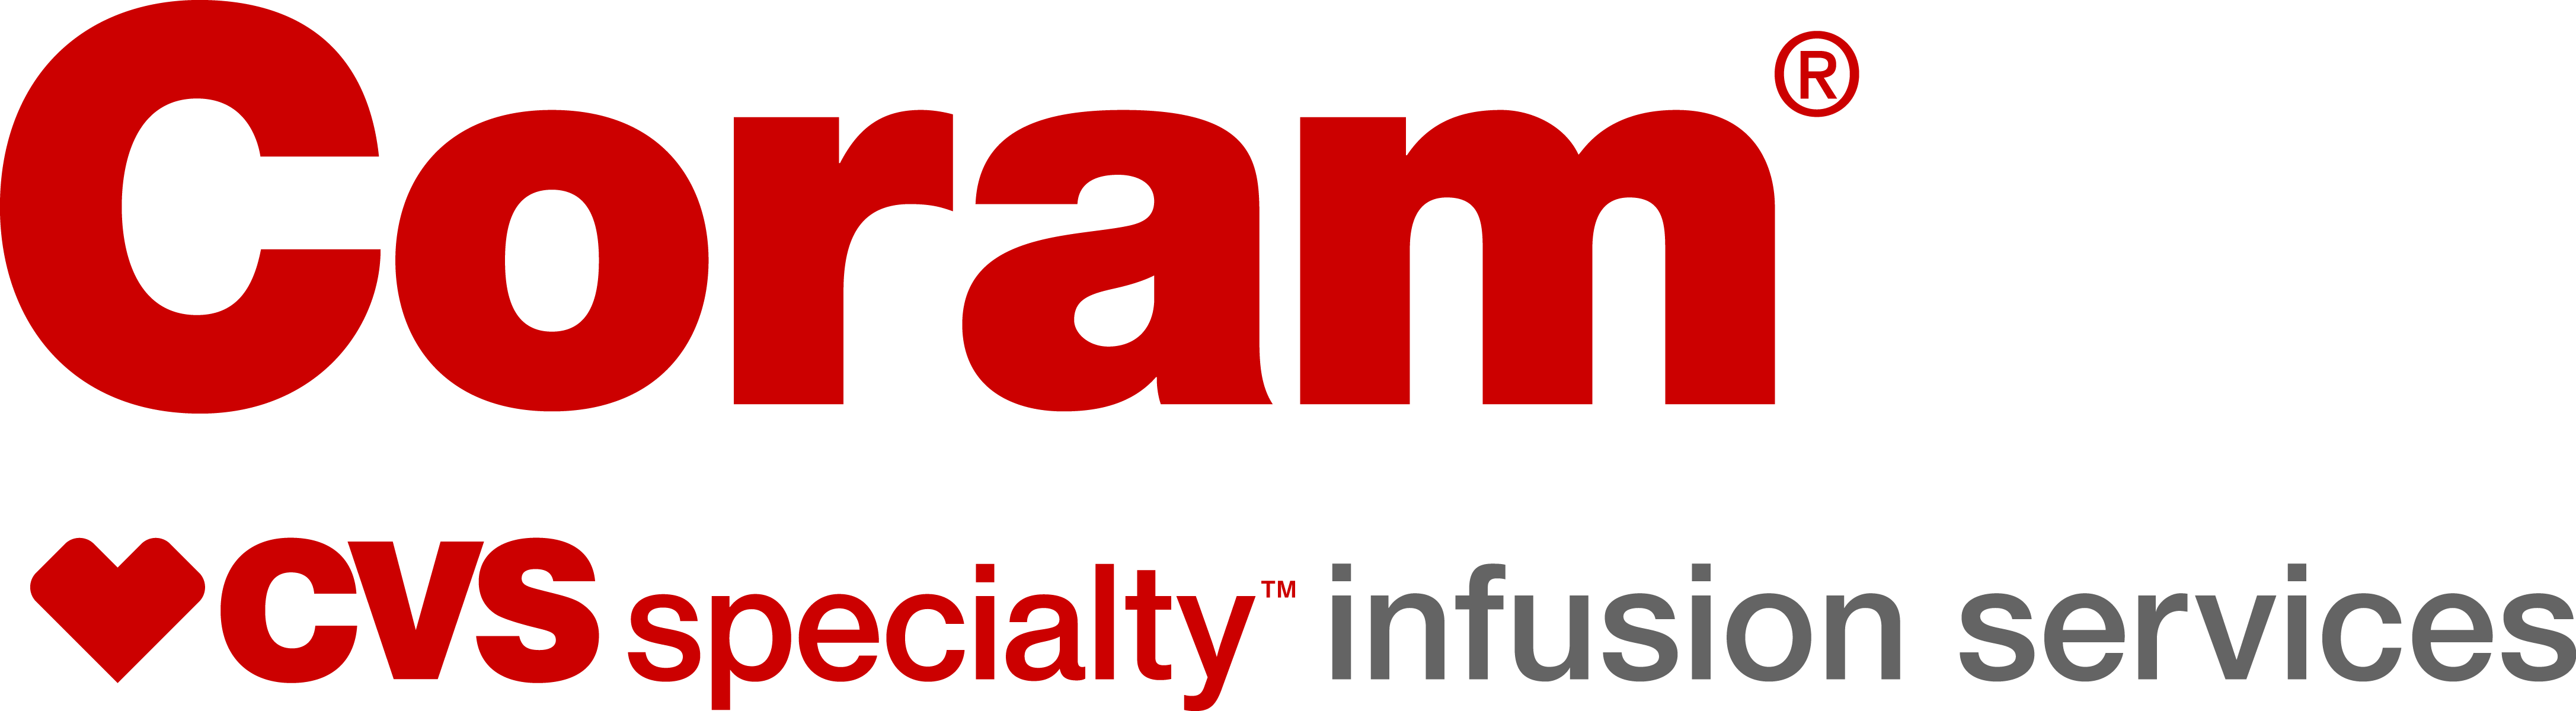 CVS Logo - Home Page | Coram CVS Specialty Infusion Services